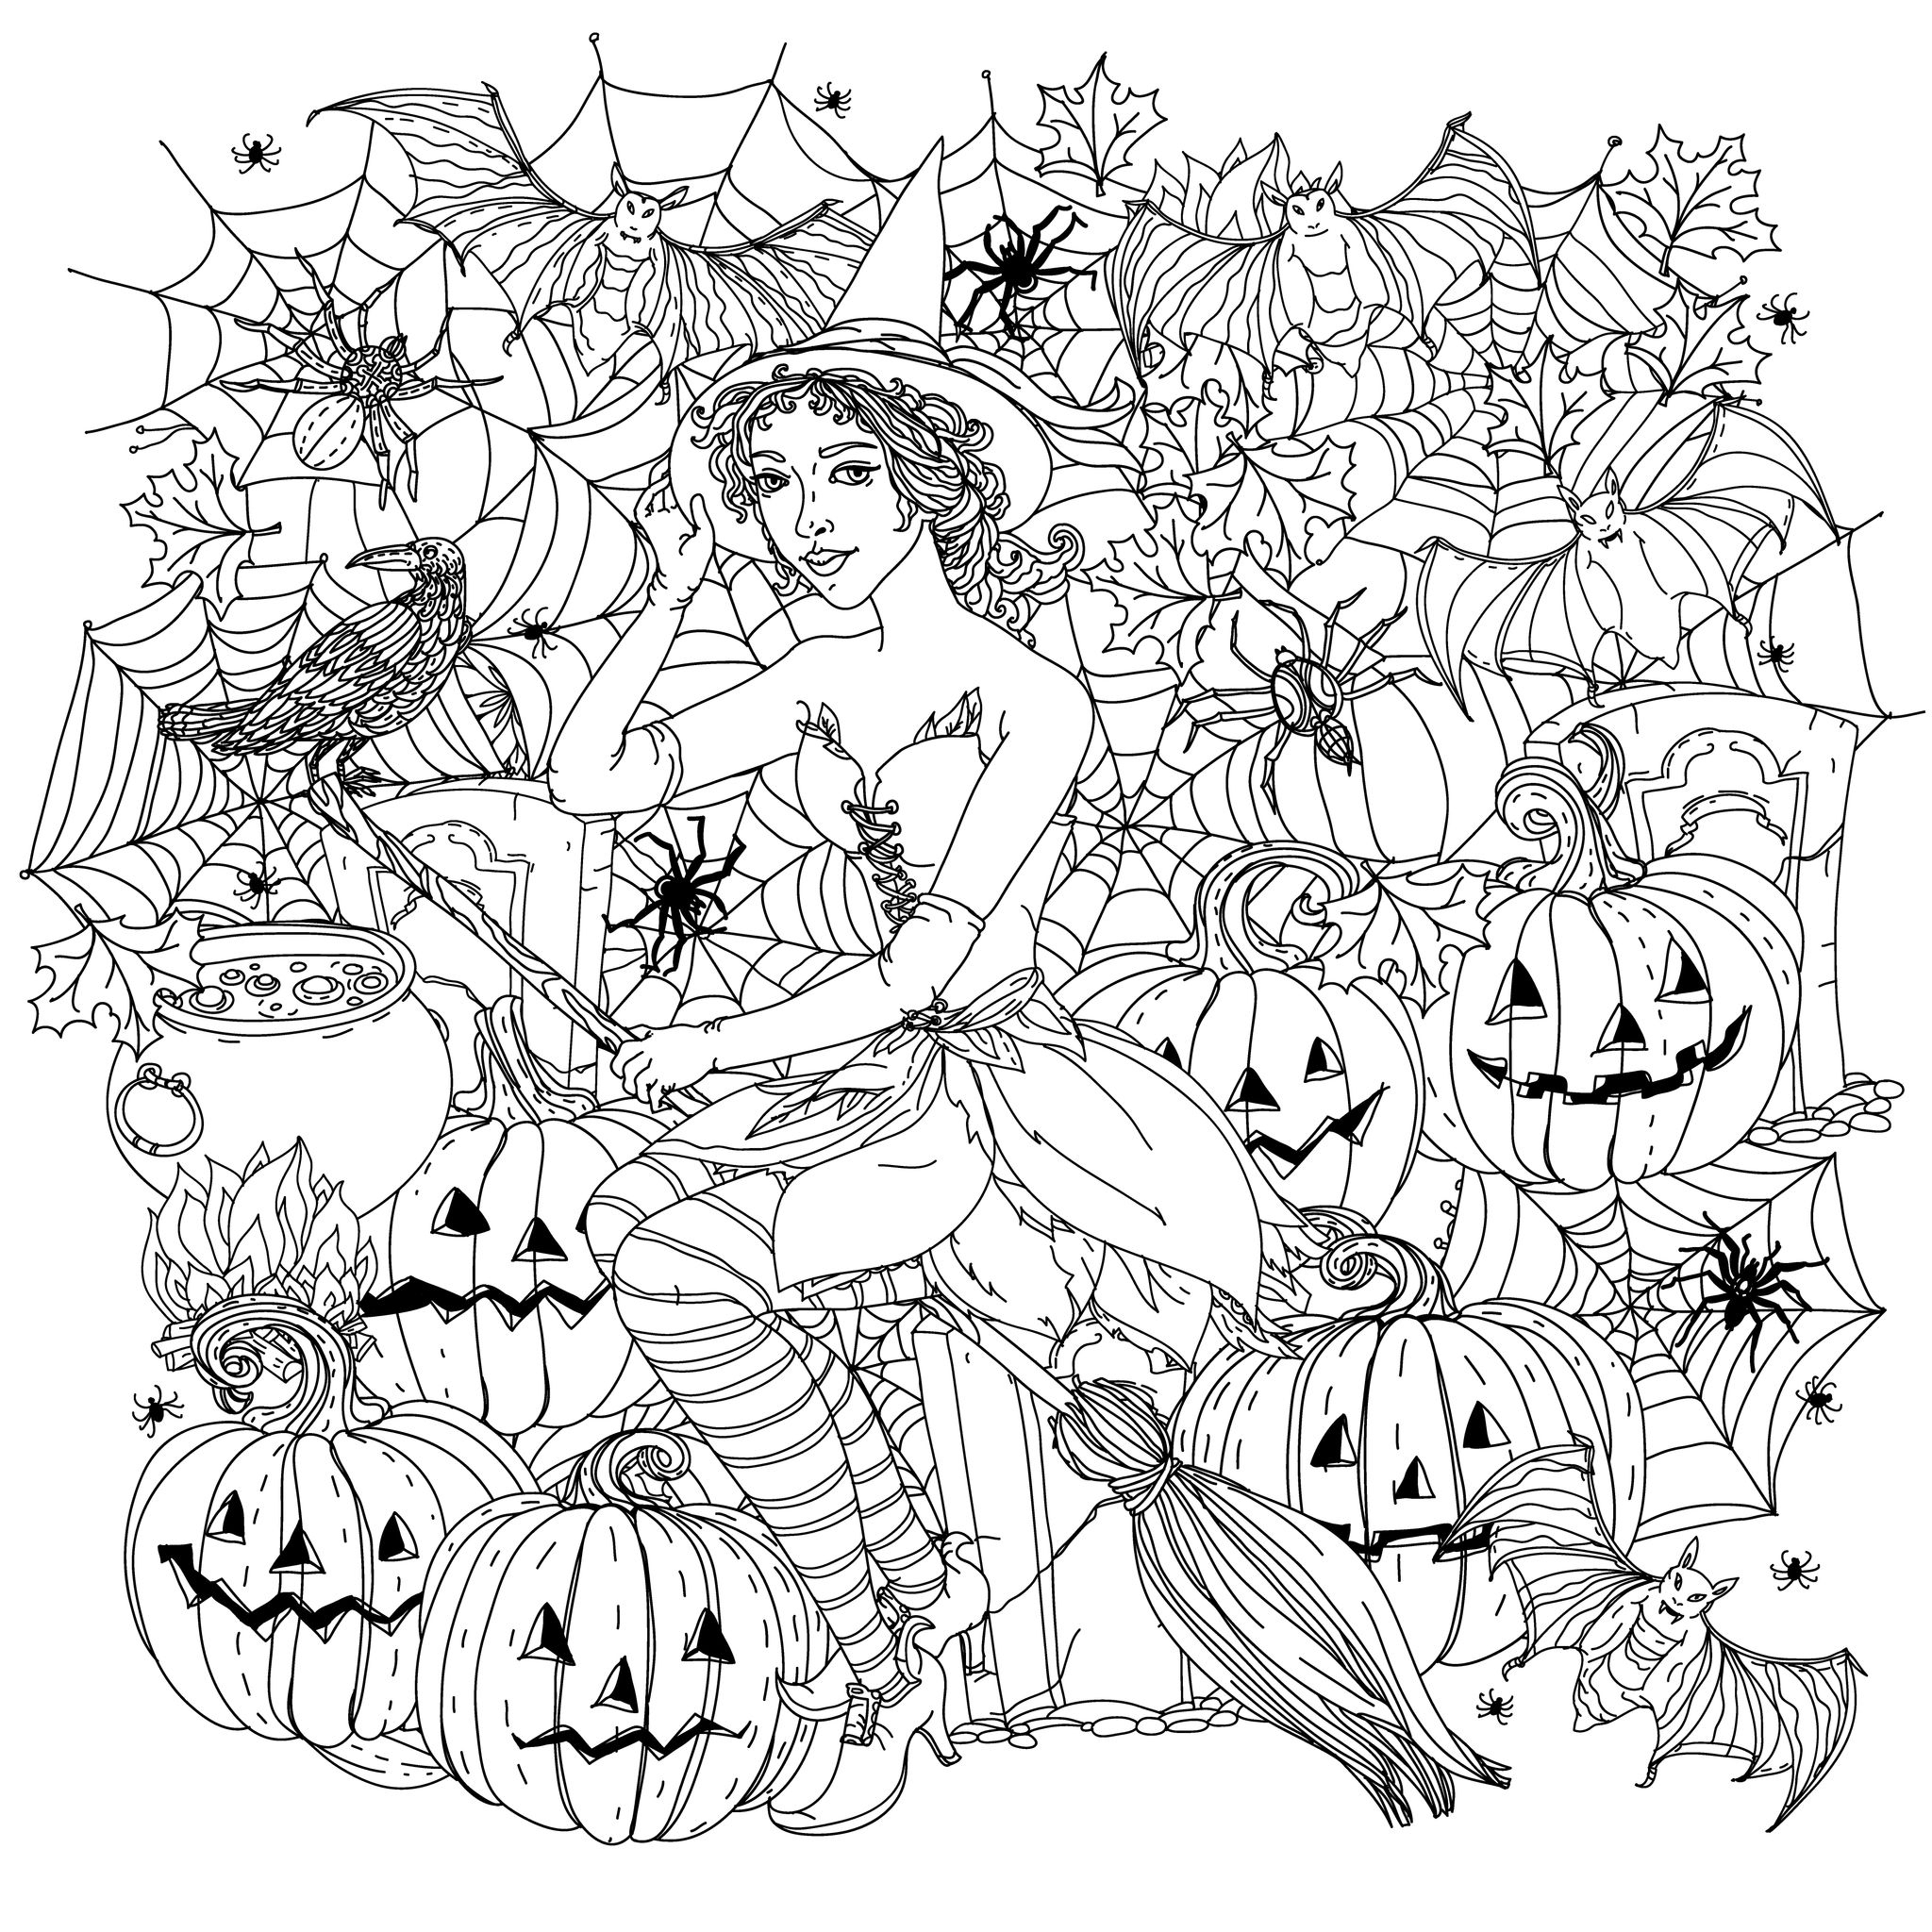 Halloween Witch With Pumpkins - Halloween Adult Coloring Pages concernant Coloriage Adult